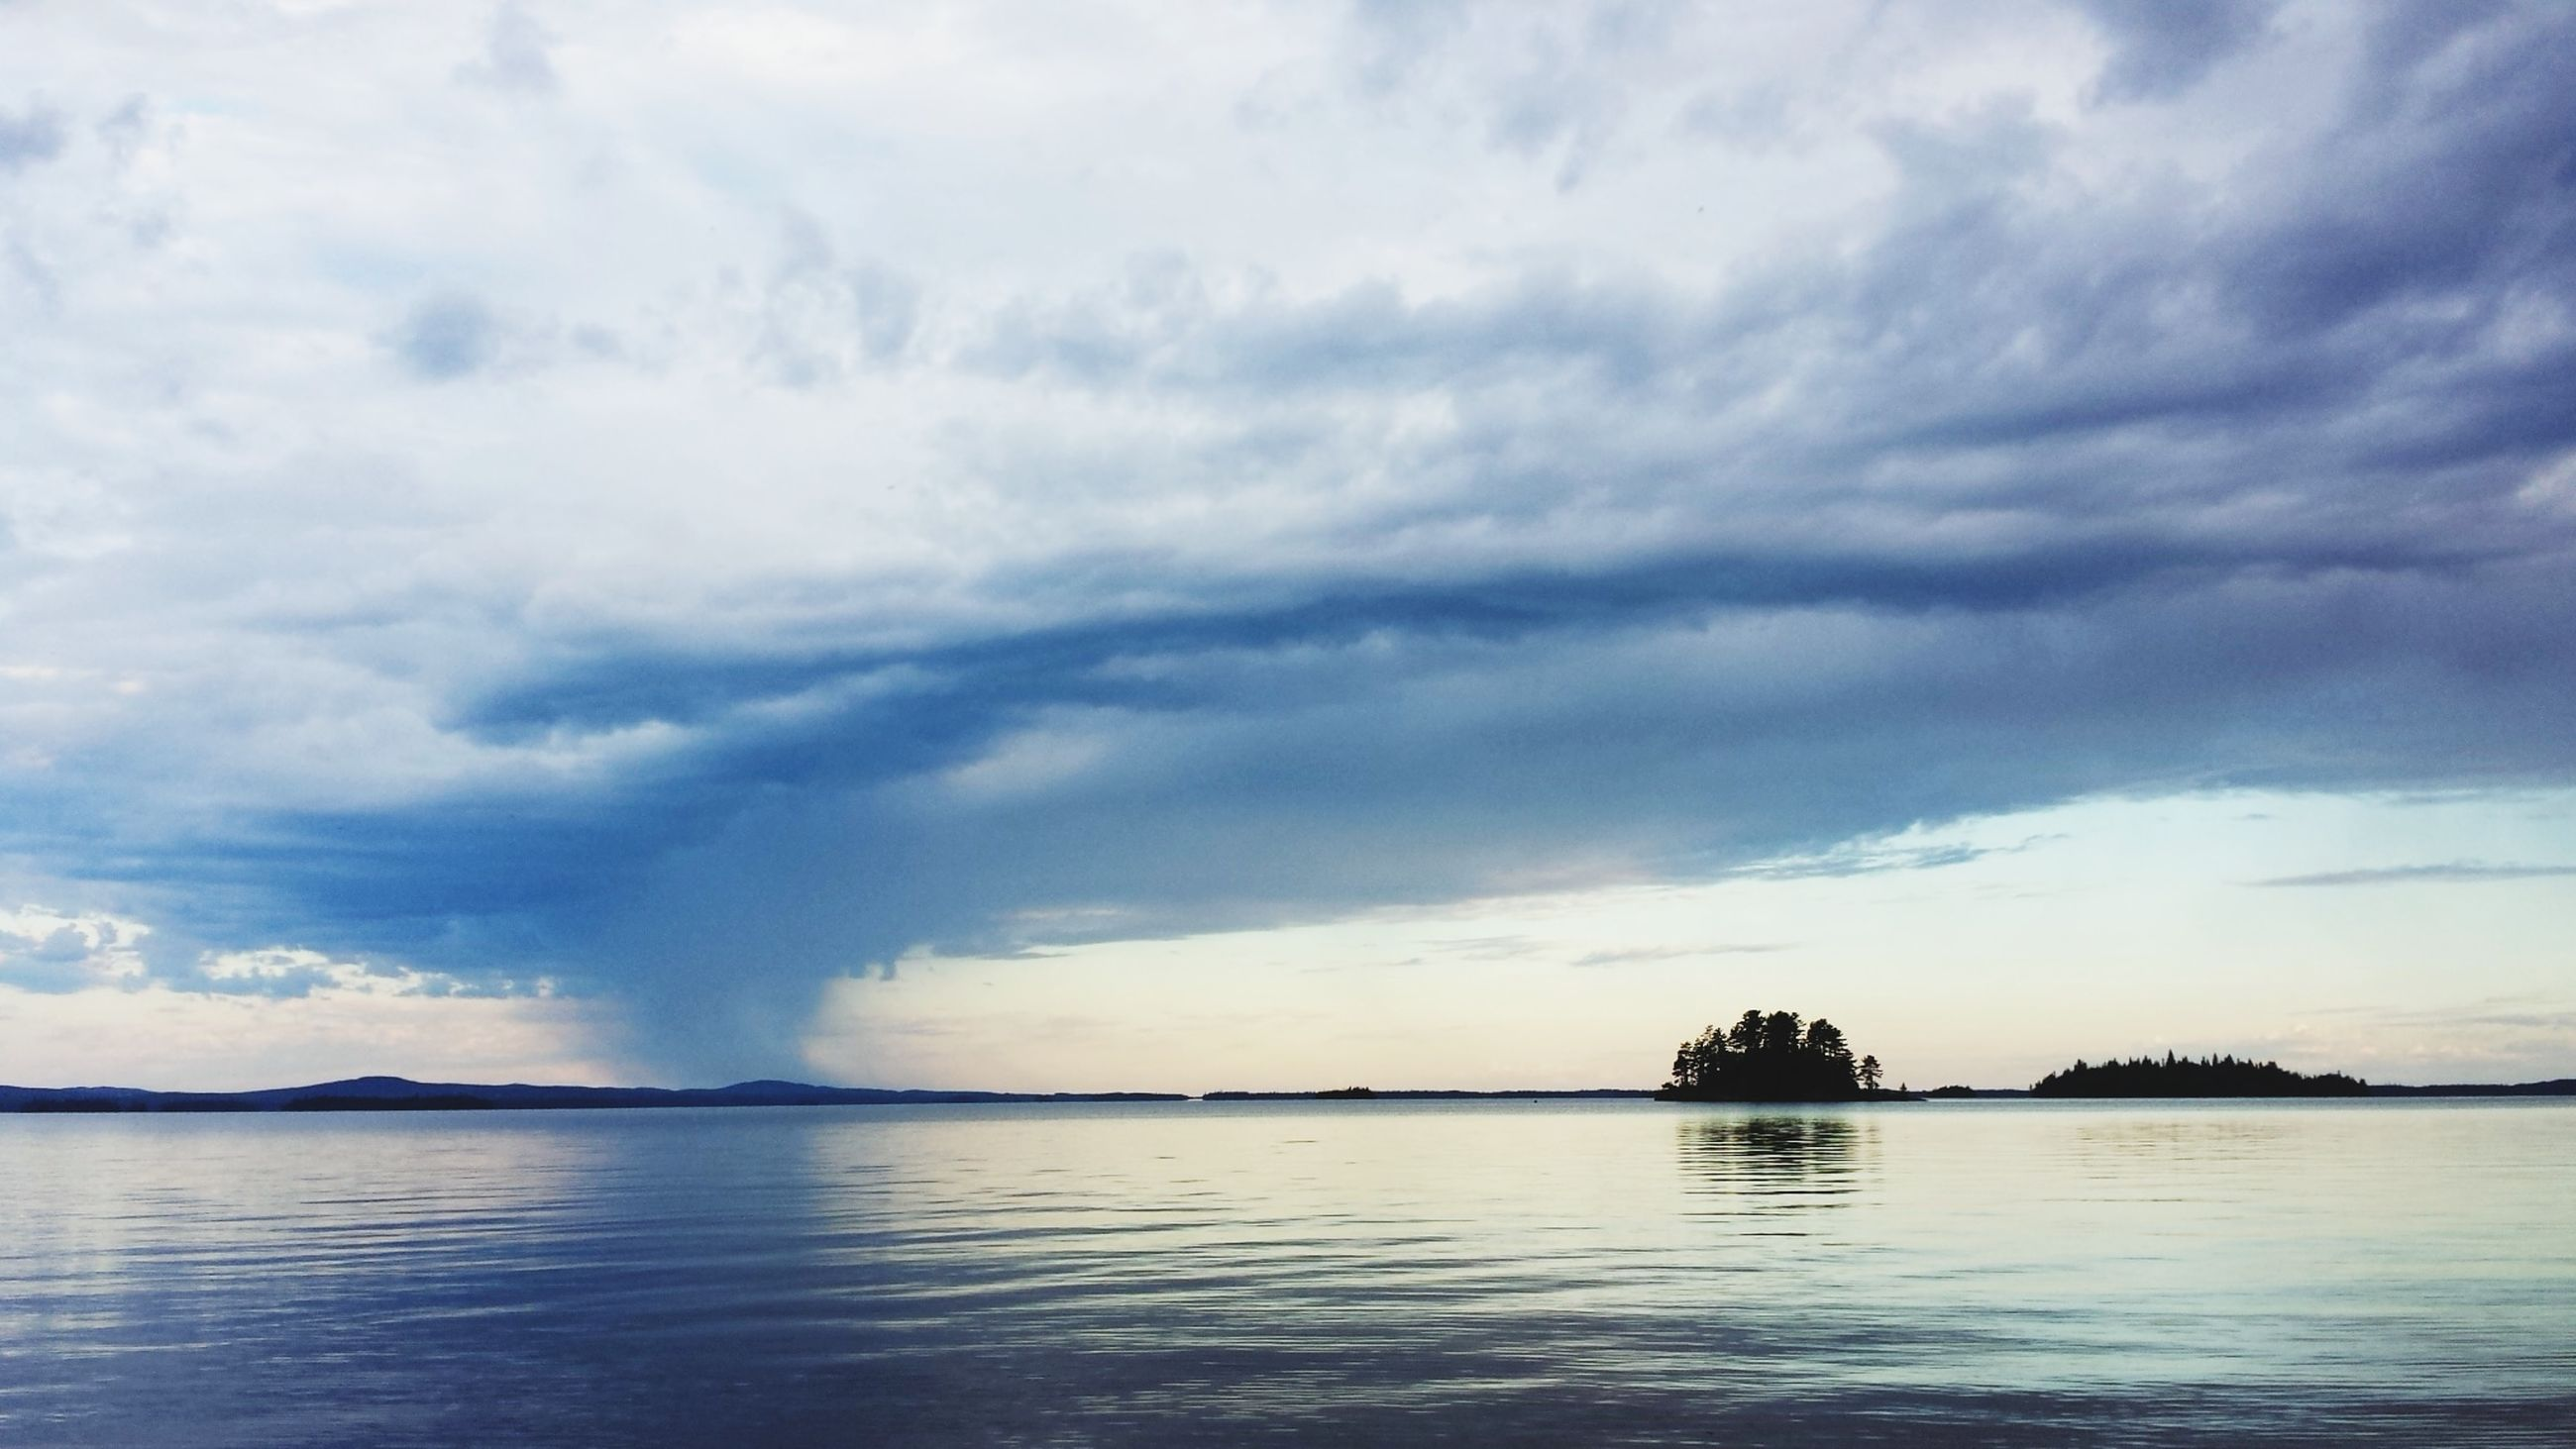 cloud - sky, sky, water, beauty in nature, scenics - nature, tranquility, tranquil scene, waterfront, sea, reflection, no people, nature, sunset, idyllic, silhouette, outdoors, storm